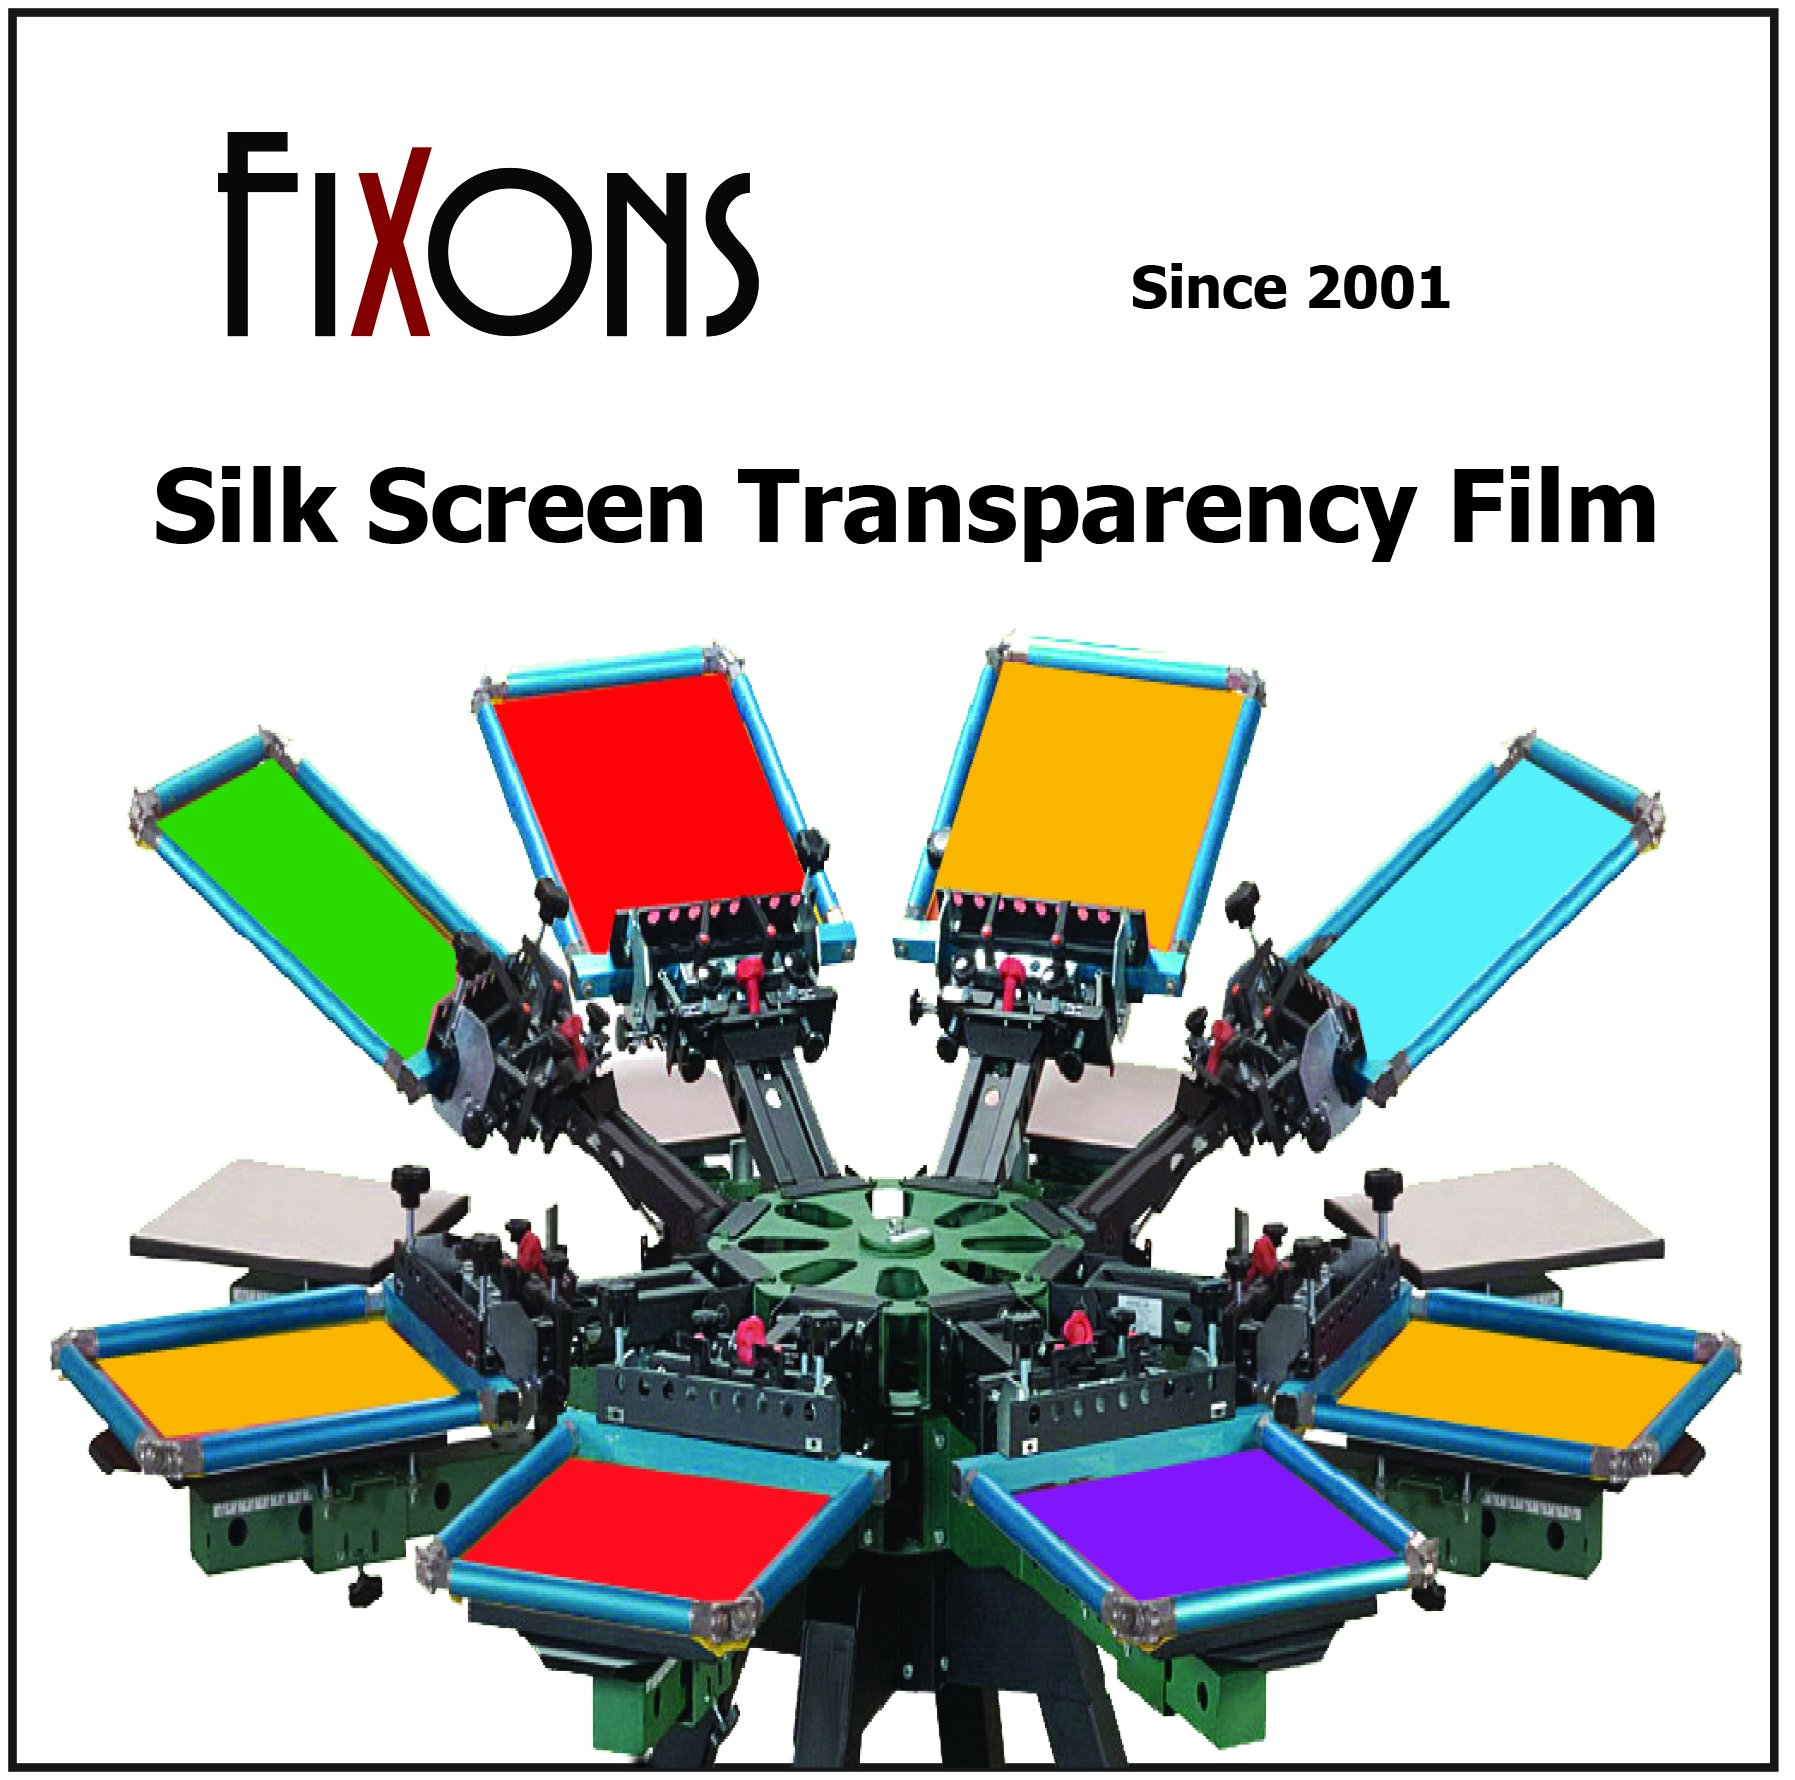 Waterproof Inkjet Screenprinting Film, Silkscreen Film 13 x 19 (50 Sheets) by FXN